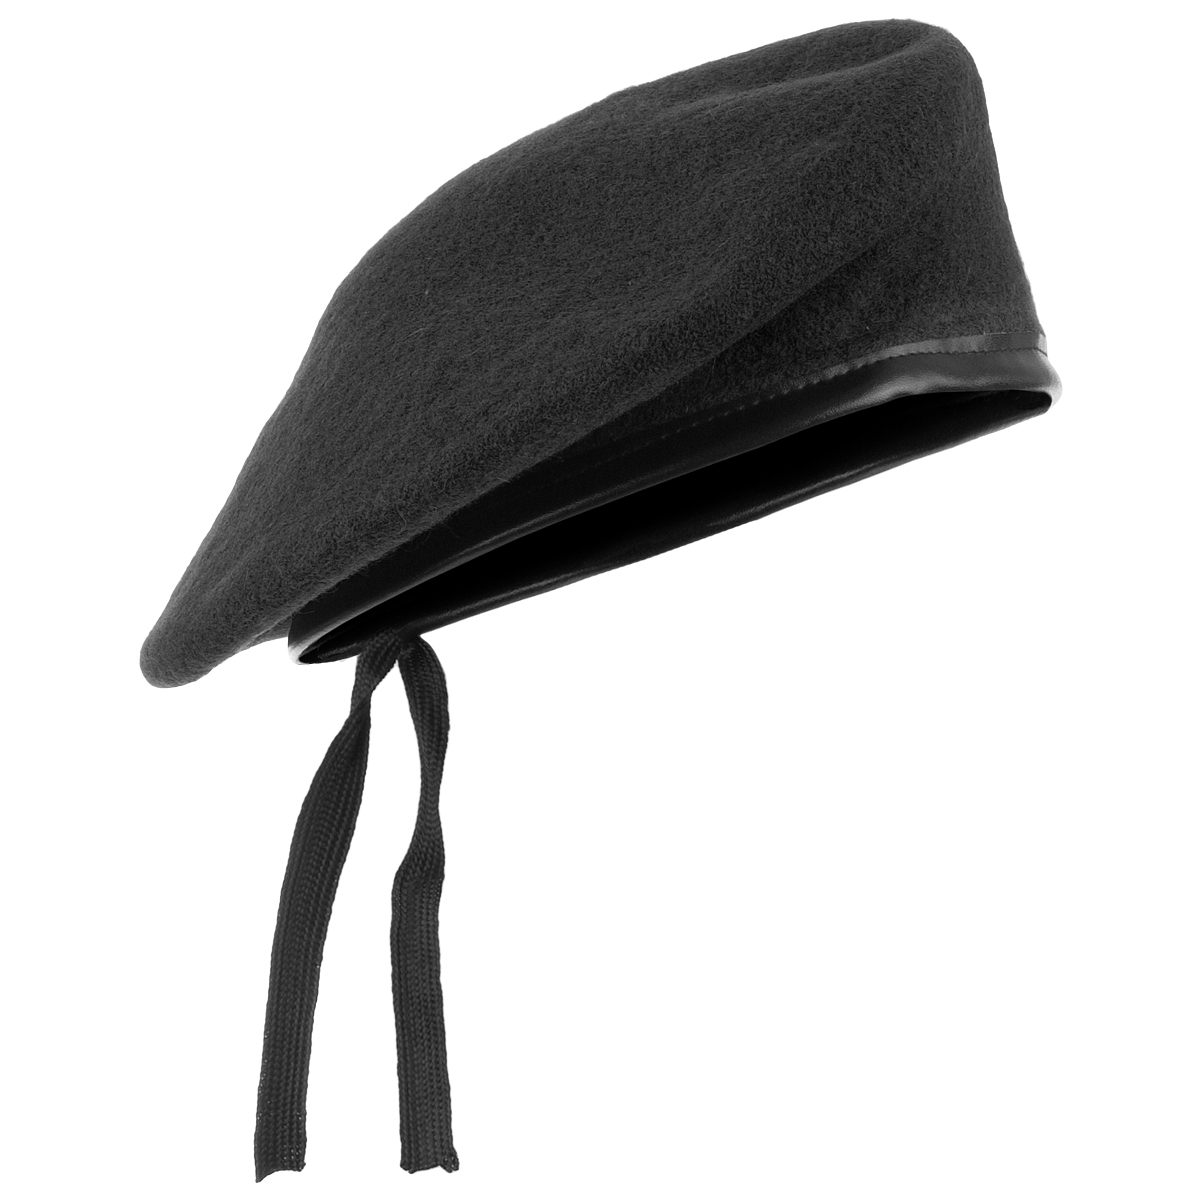 Sentinel Army Style Tactical Beret Classic Military Unisex Hat Mens Patrol  Cap Wool Black 9e45b844ee4